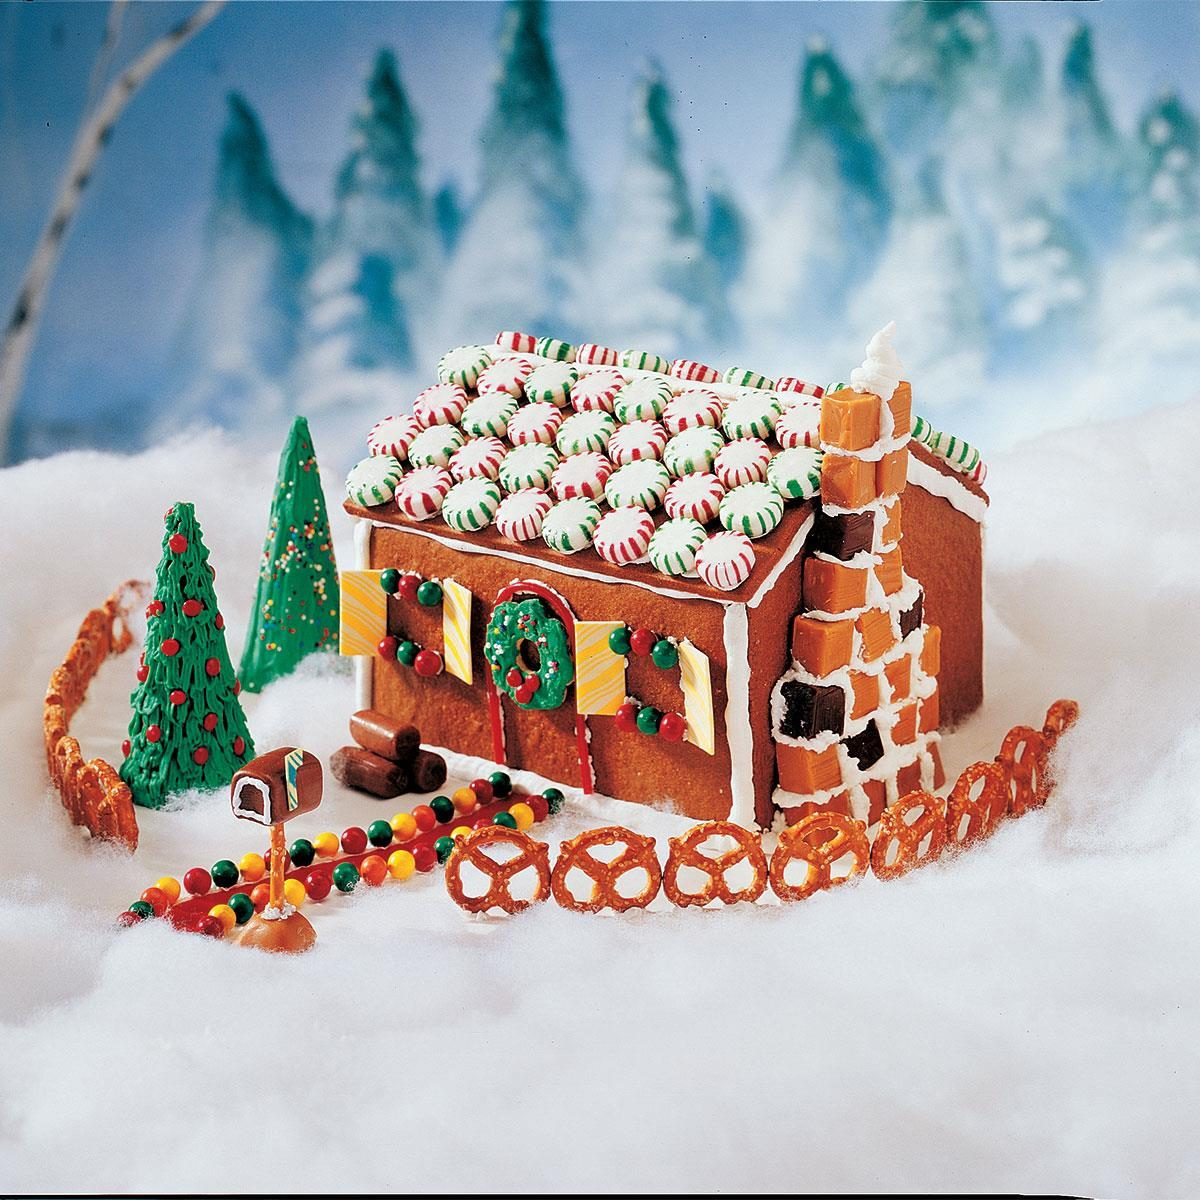 Ellen 39 s edible gingerbread house recipe taste of home for Gingerbread house themes